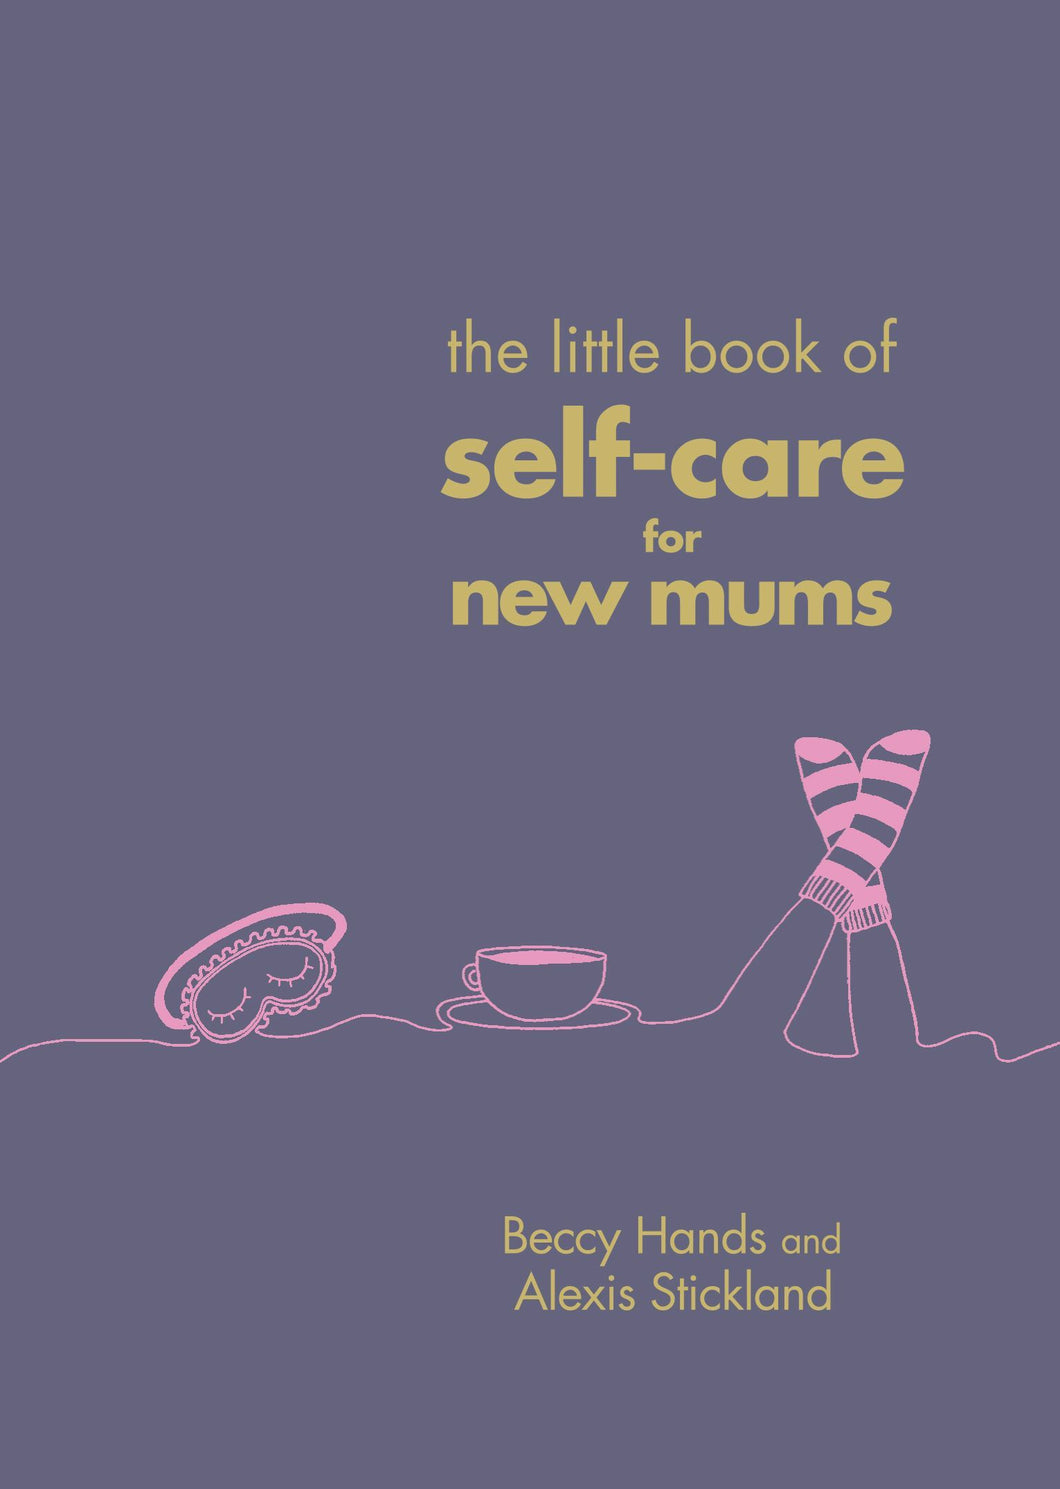 The little book of self-care for new mums Books GrumpyKid